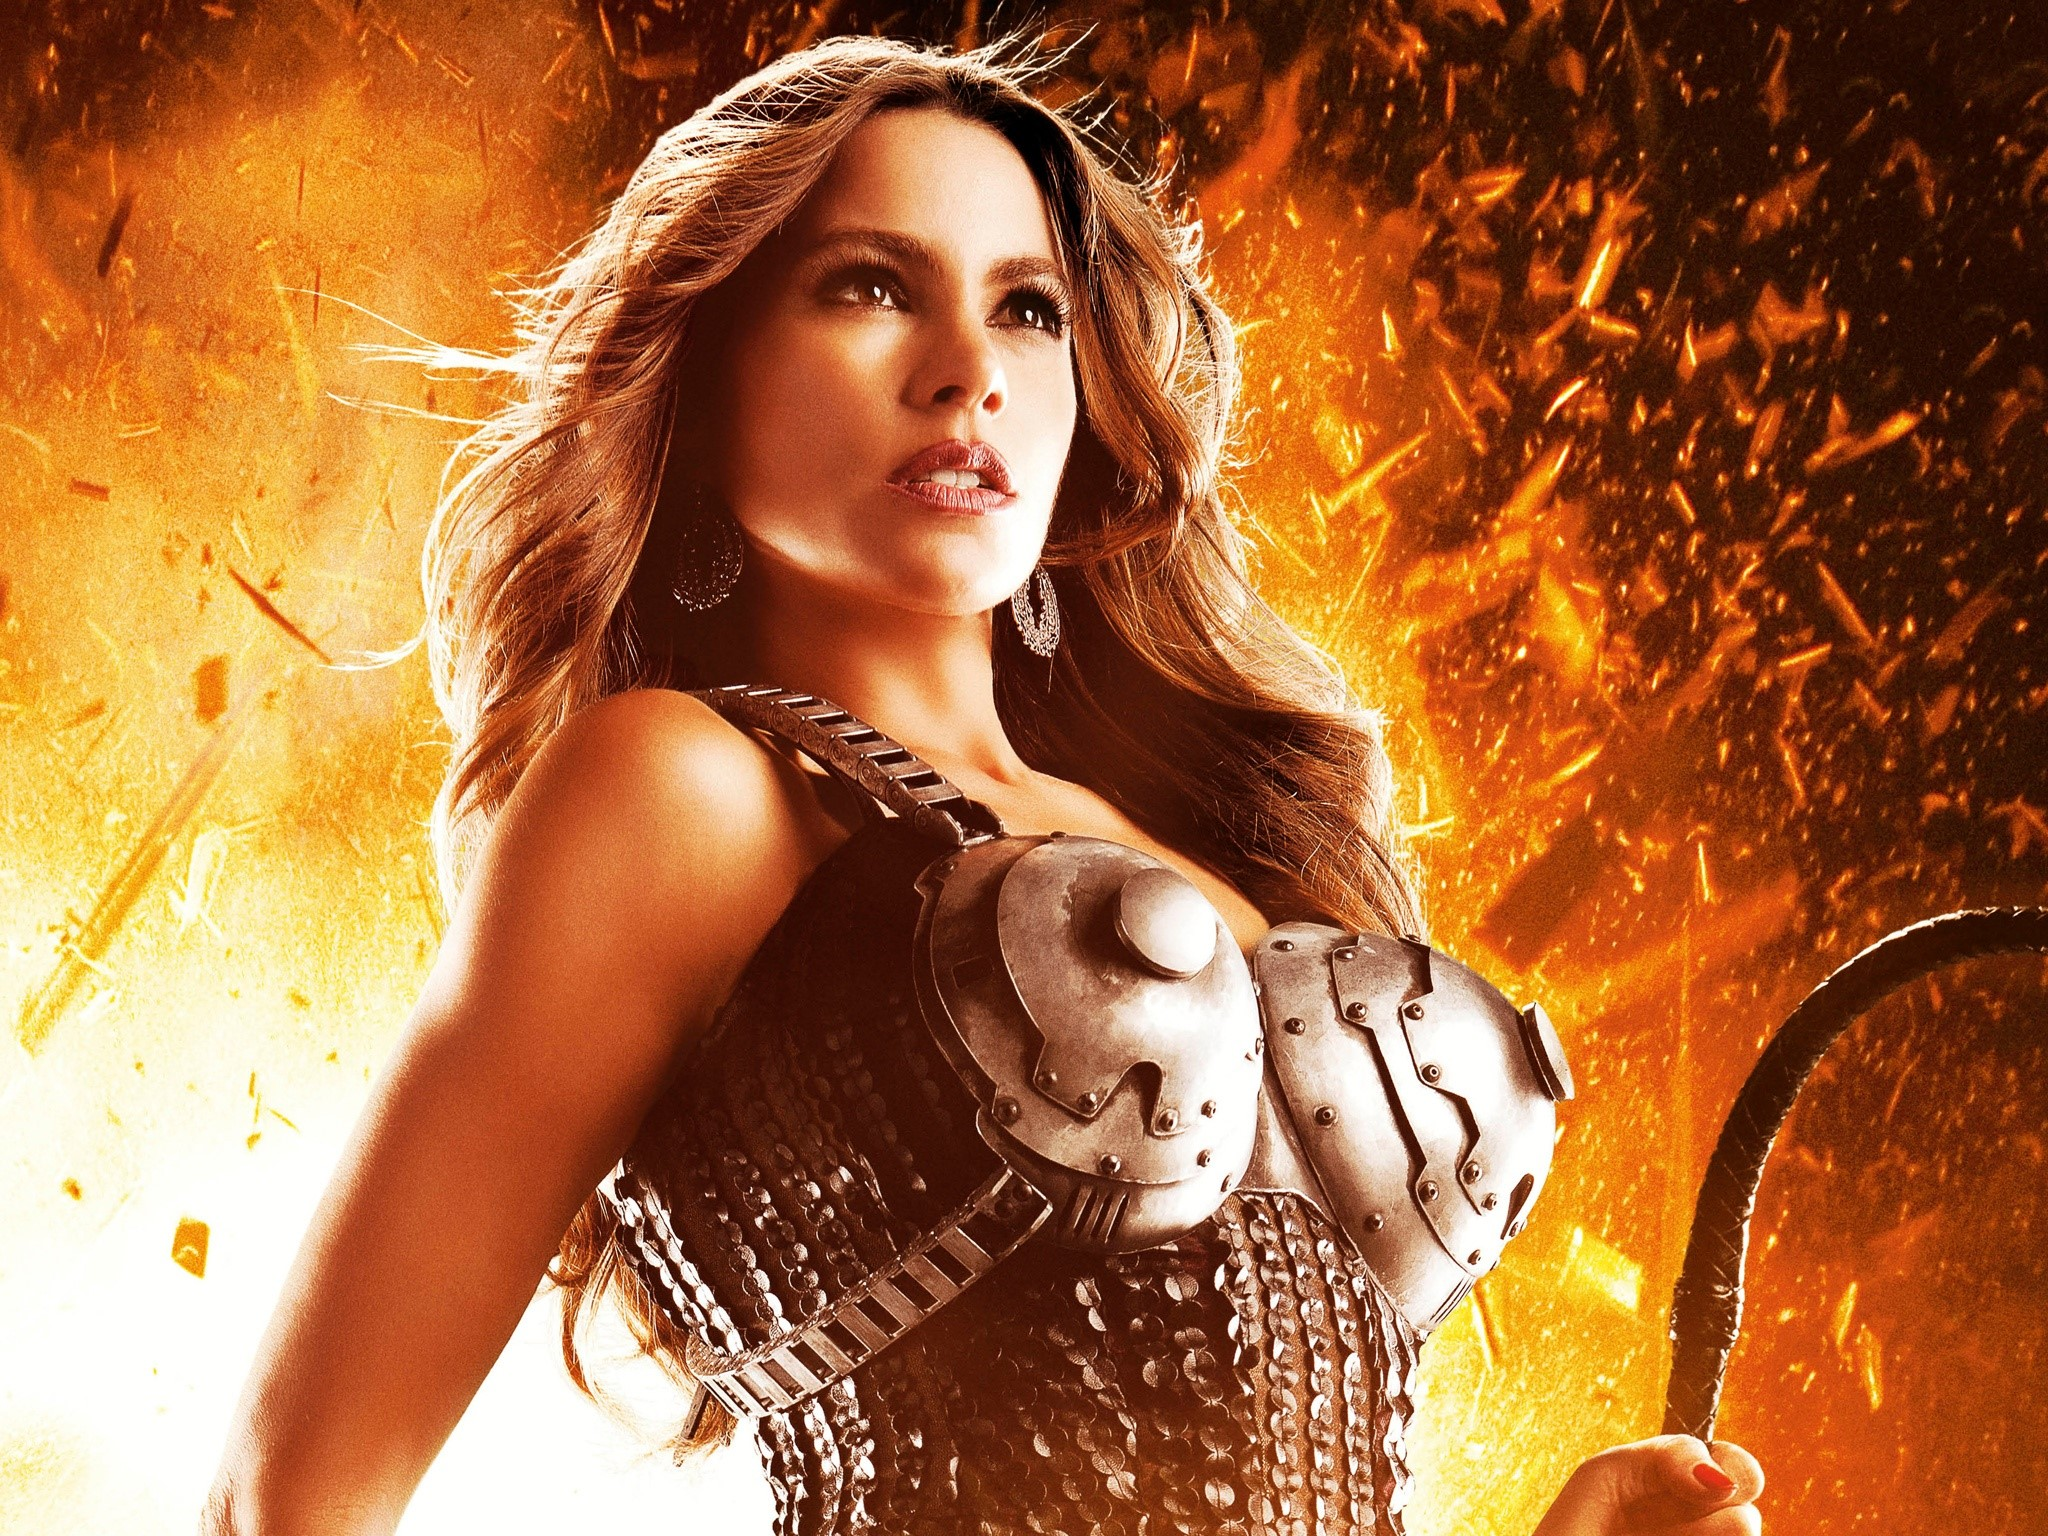 Wallpaper Sofia Vergara en Machete Kills Images